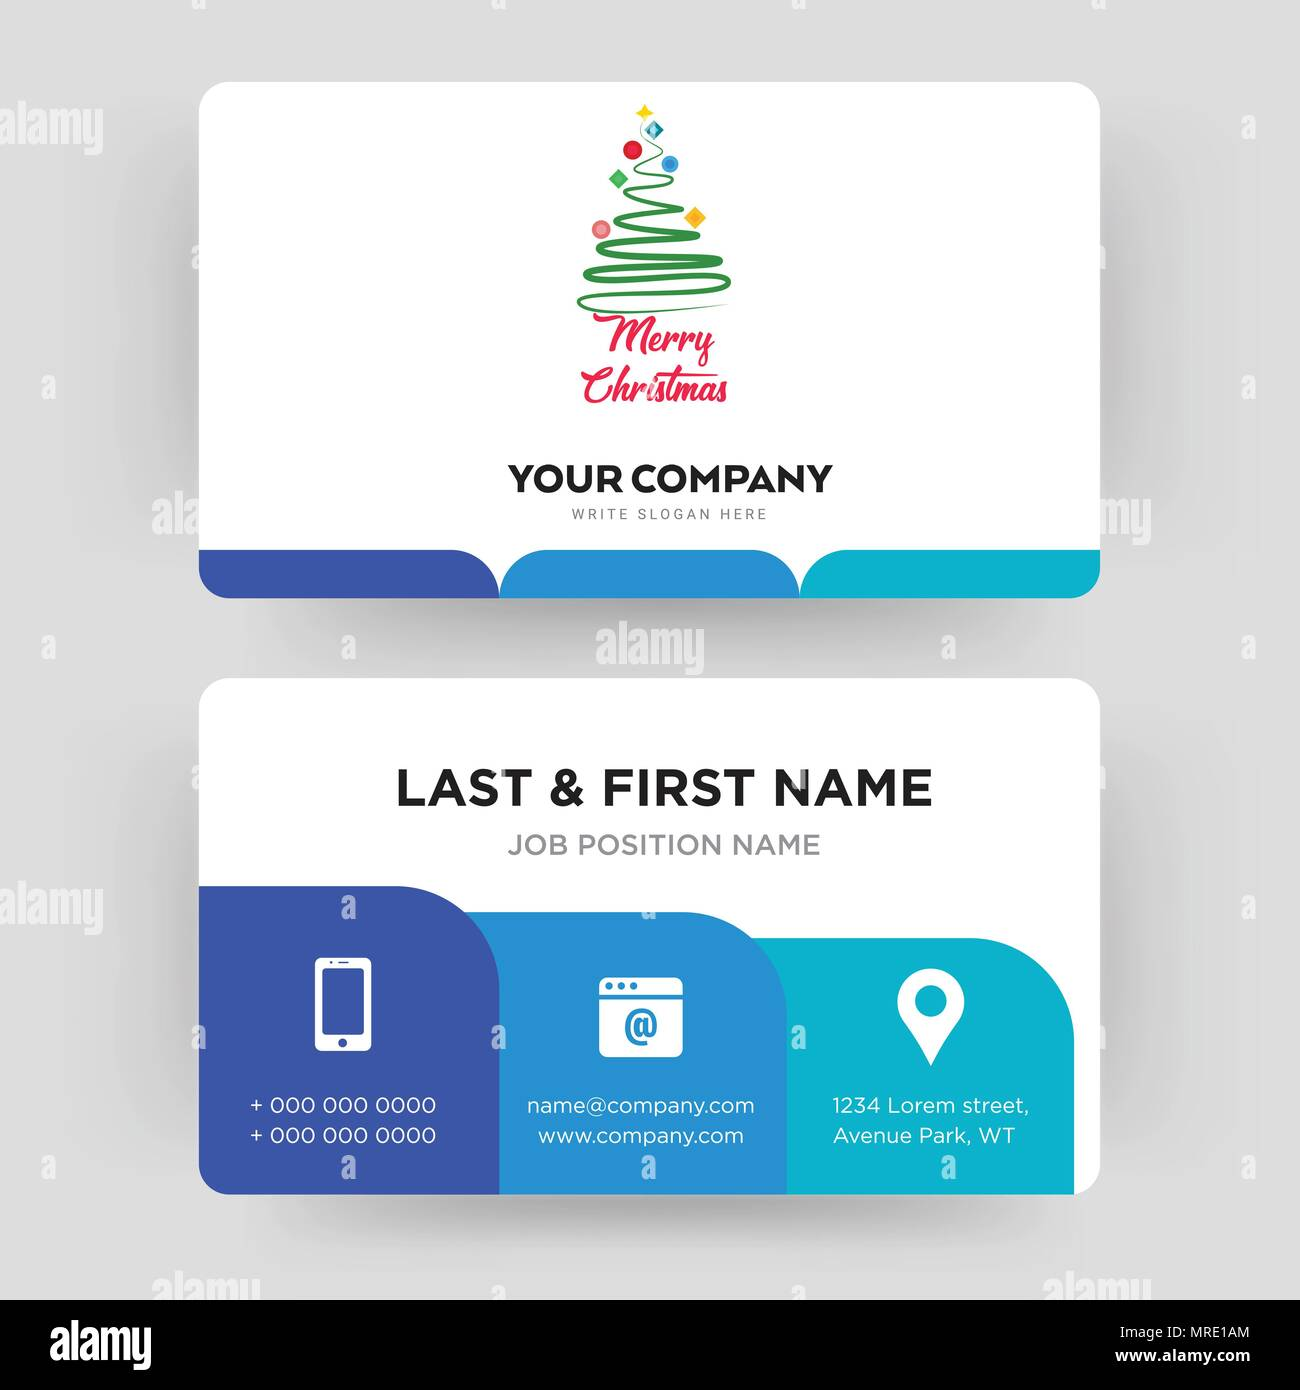 Merry Christmas Business Card Design Template Visiting For Your Company Modern Creative And Clean Identity Vector